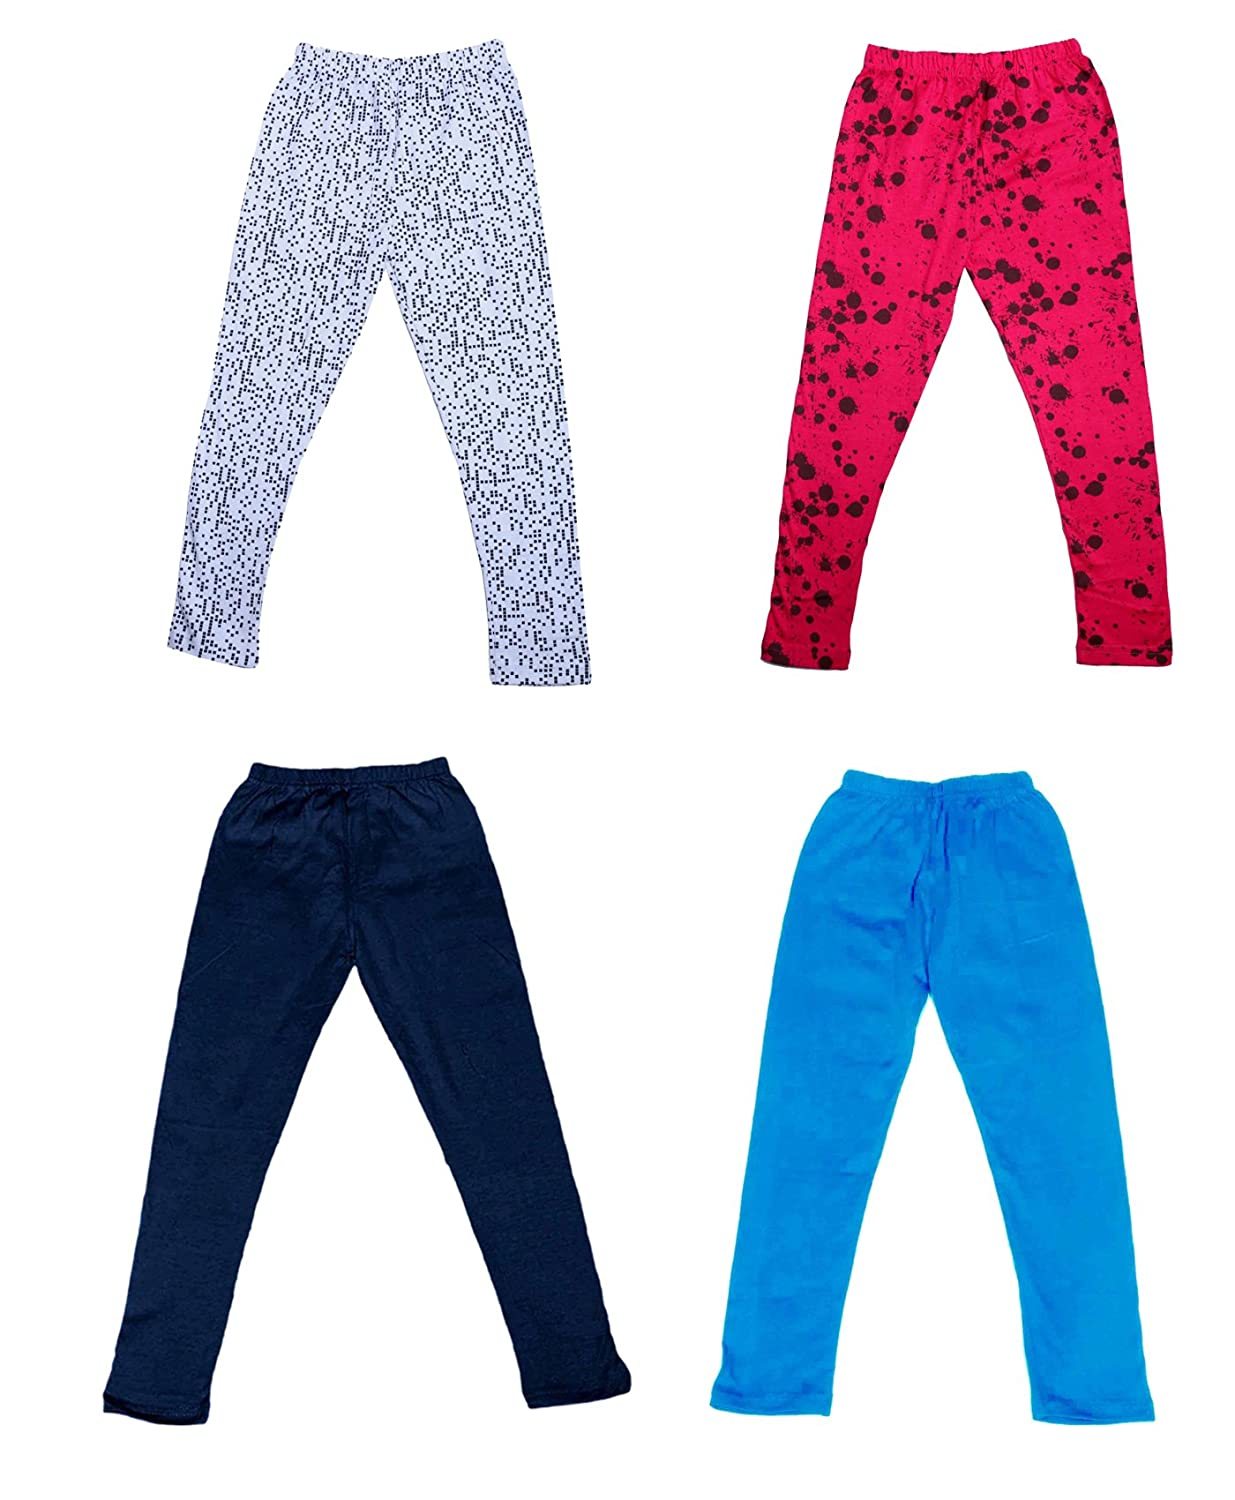 /_Multicolor/_Size-5-6 Years/_71410112021-IW-P4-28 Pack Of 4 and 2 Cotton Printed Legging Pants Indistar Girls 2 Cotton Solid Legging Pants